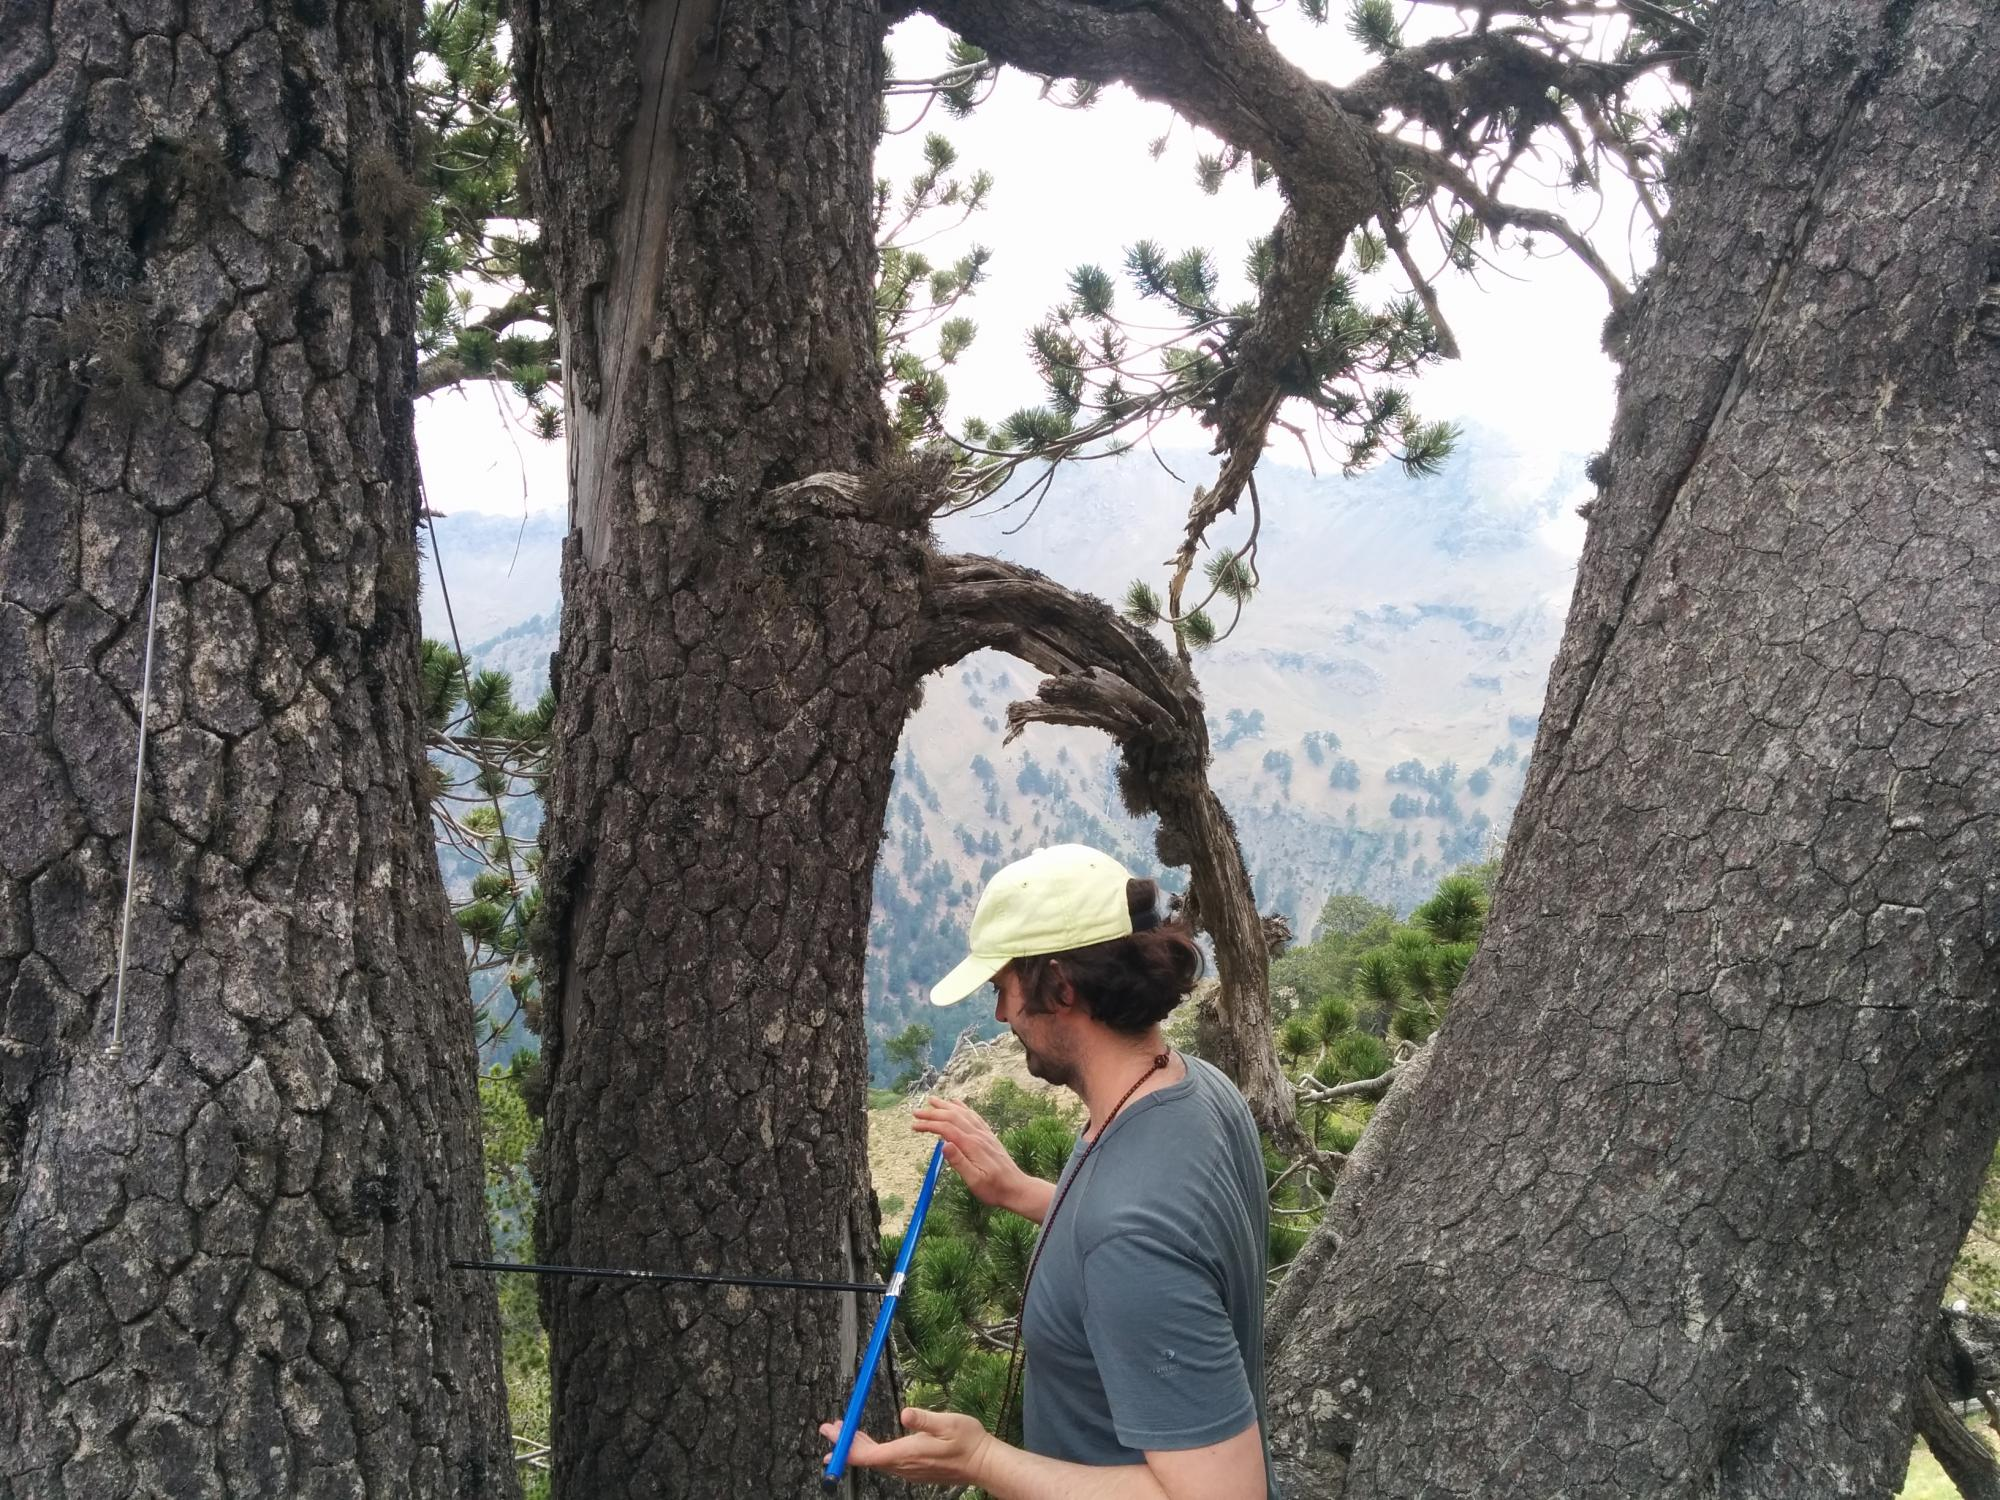 UA geosciences doctoral student Matthew Meko cores a Bosnian pine. He was part of the 2016 expedition that determined that a Bosnian pine is the oldest known living tree in Europe.